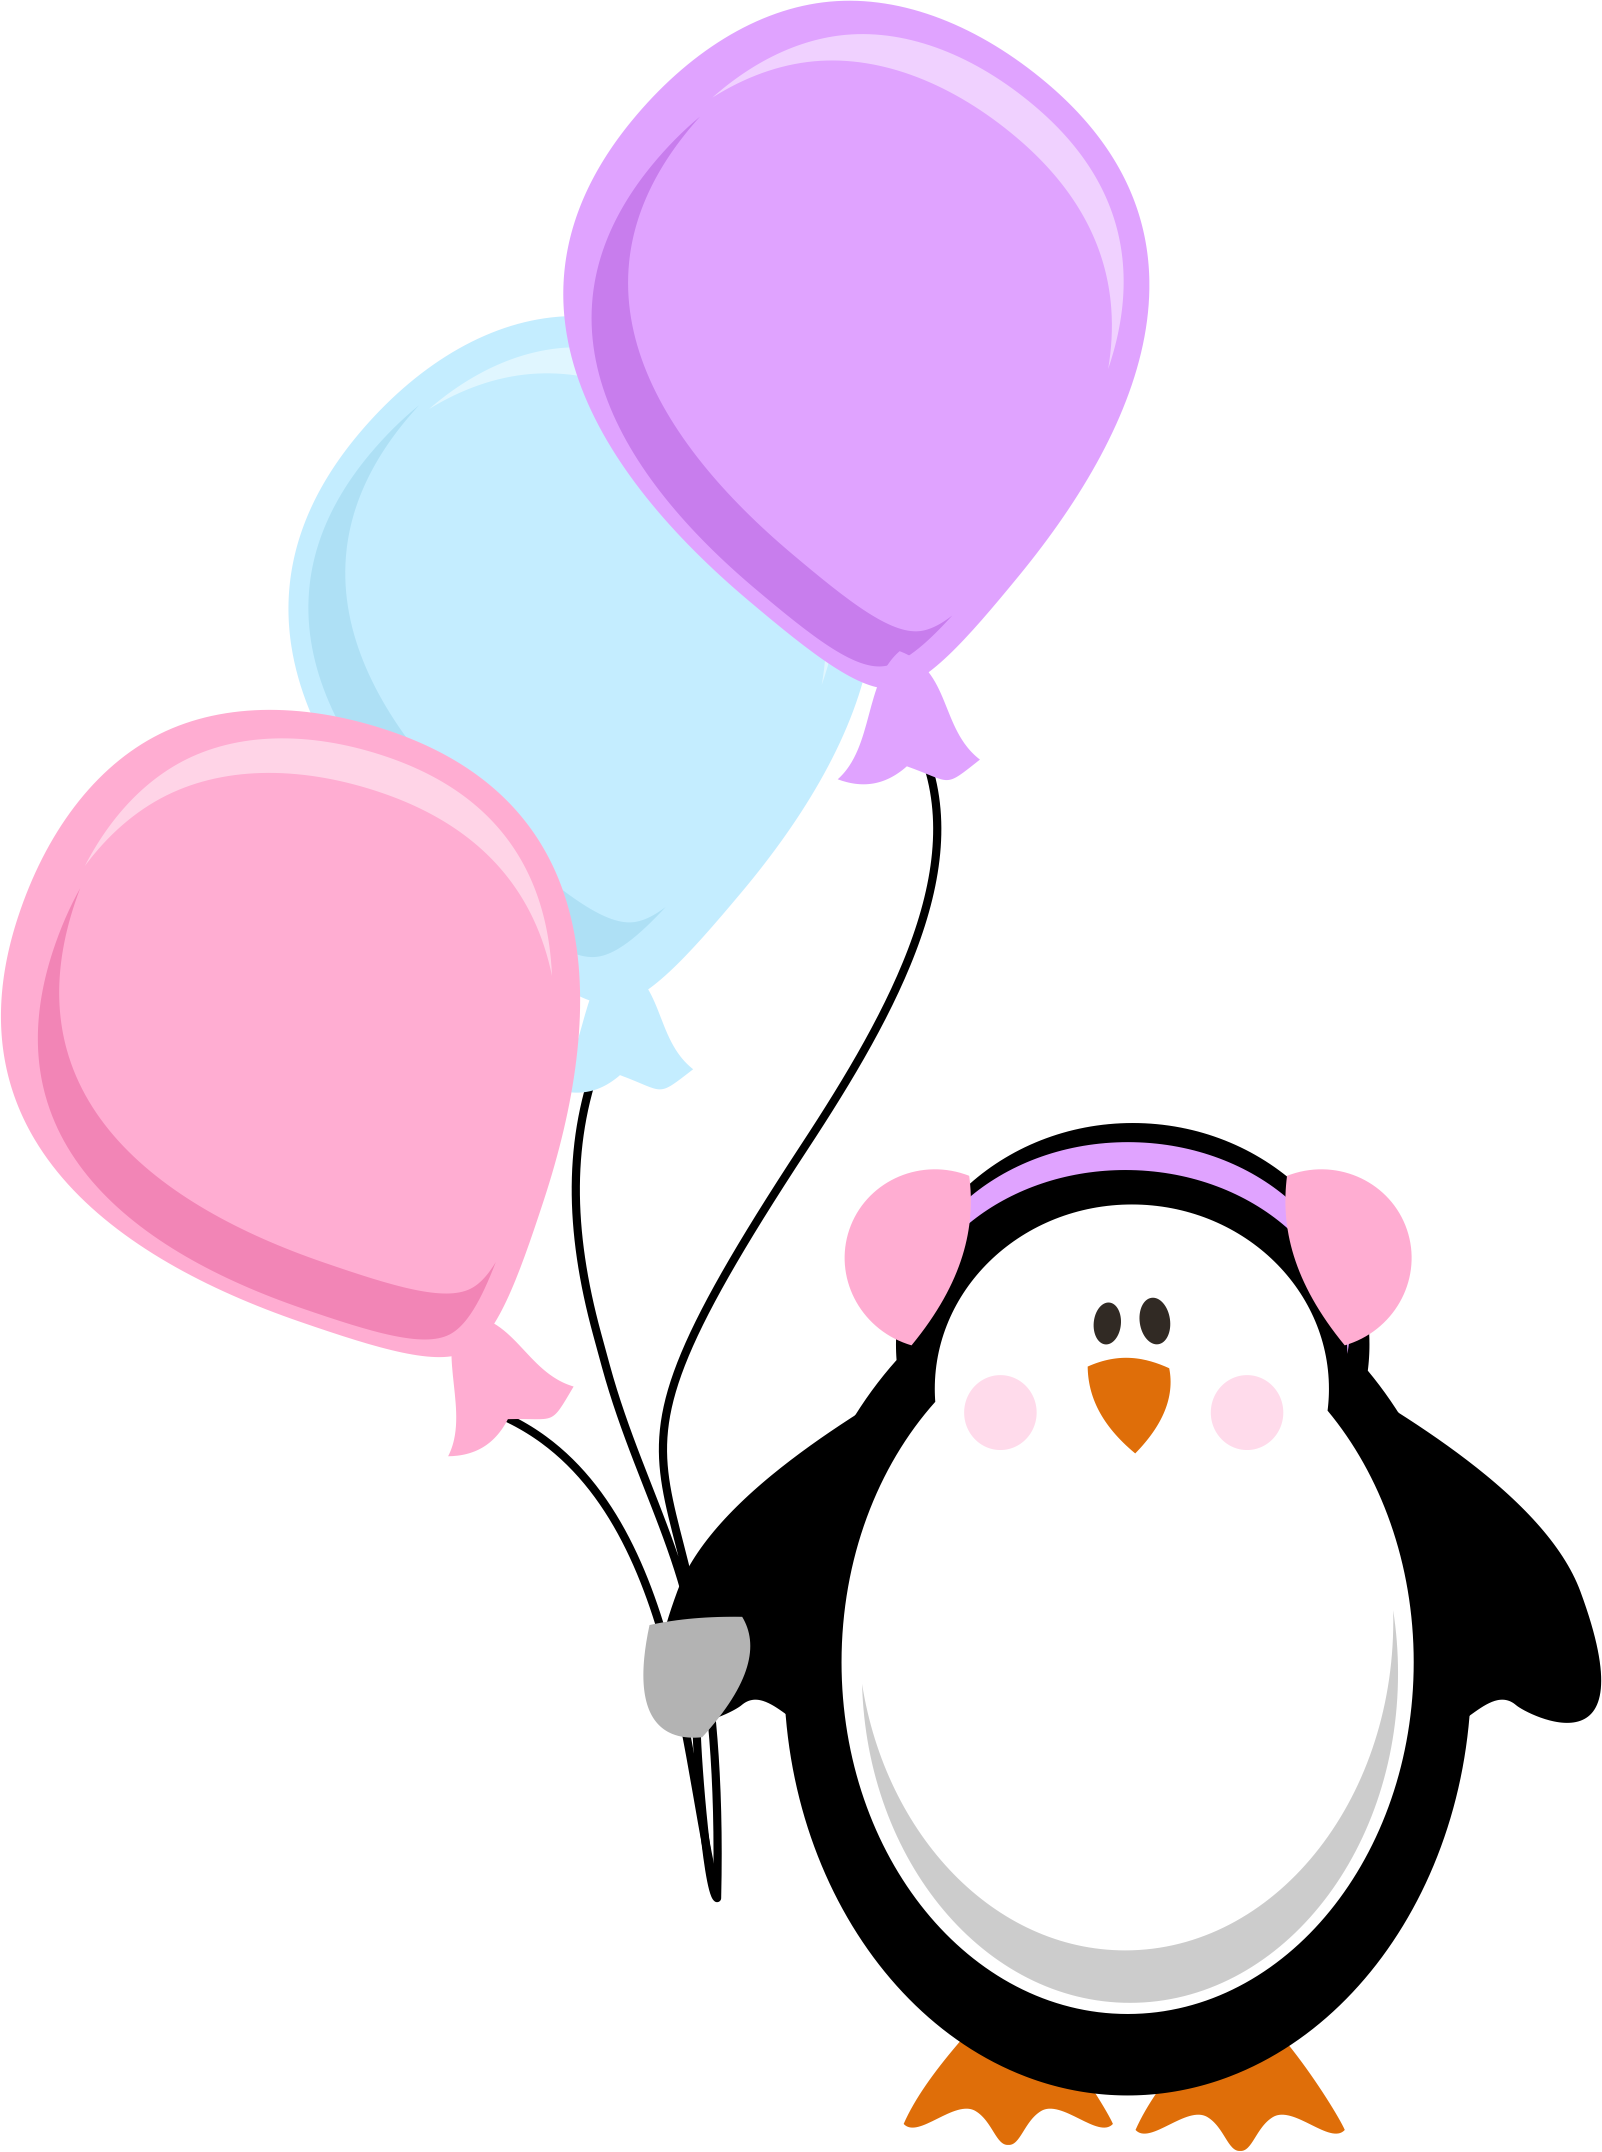 Penguin clipart birthday. Photo by daniellemoraesfalcao minus